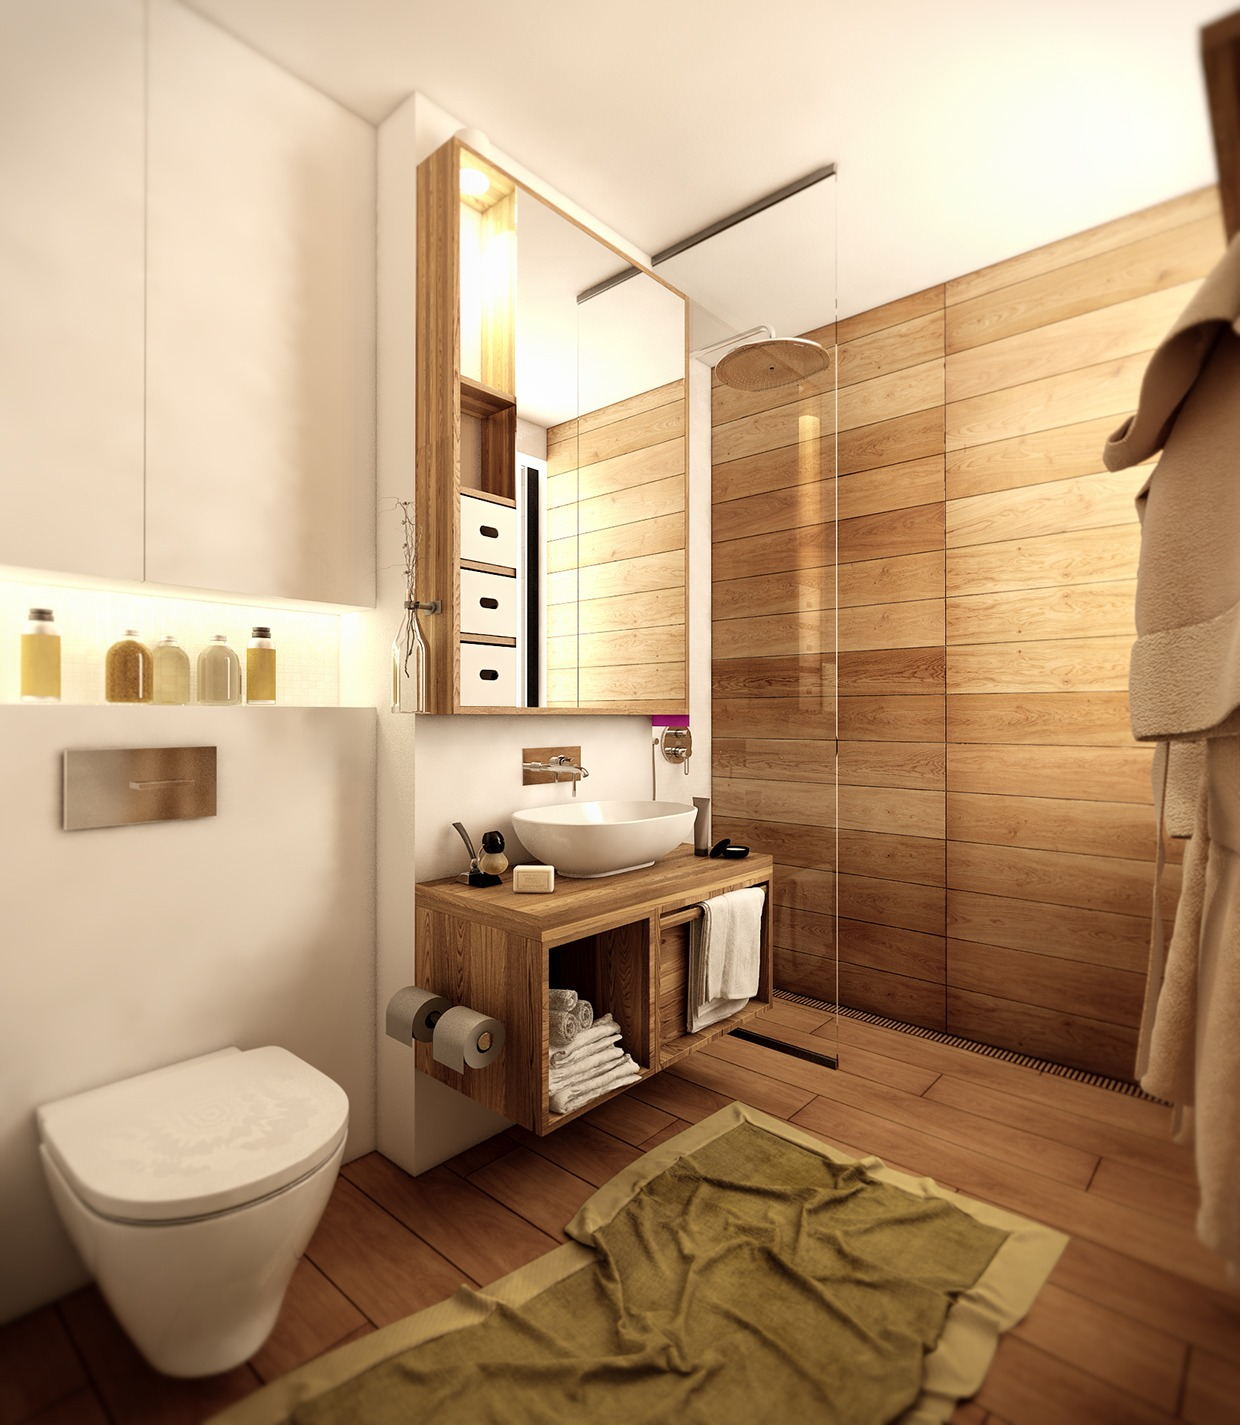 Wood floor bathroom interior design ideas Bathroom ideas wooden floor